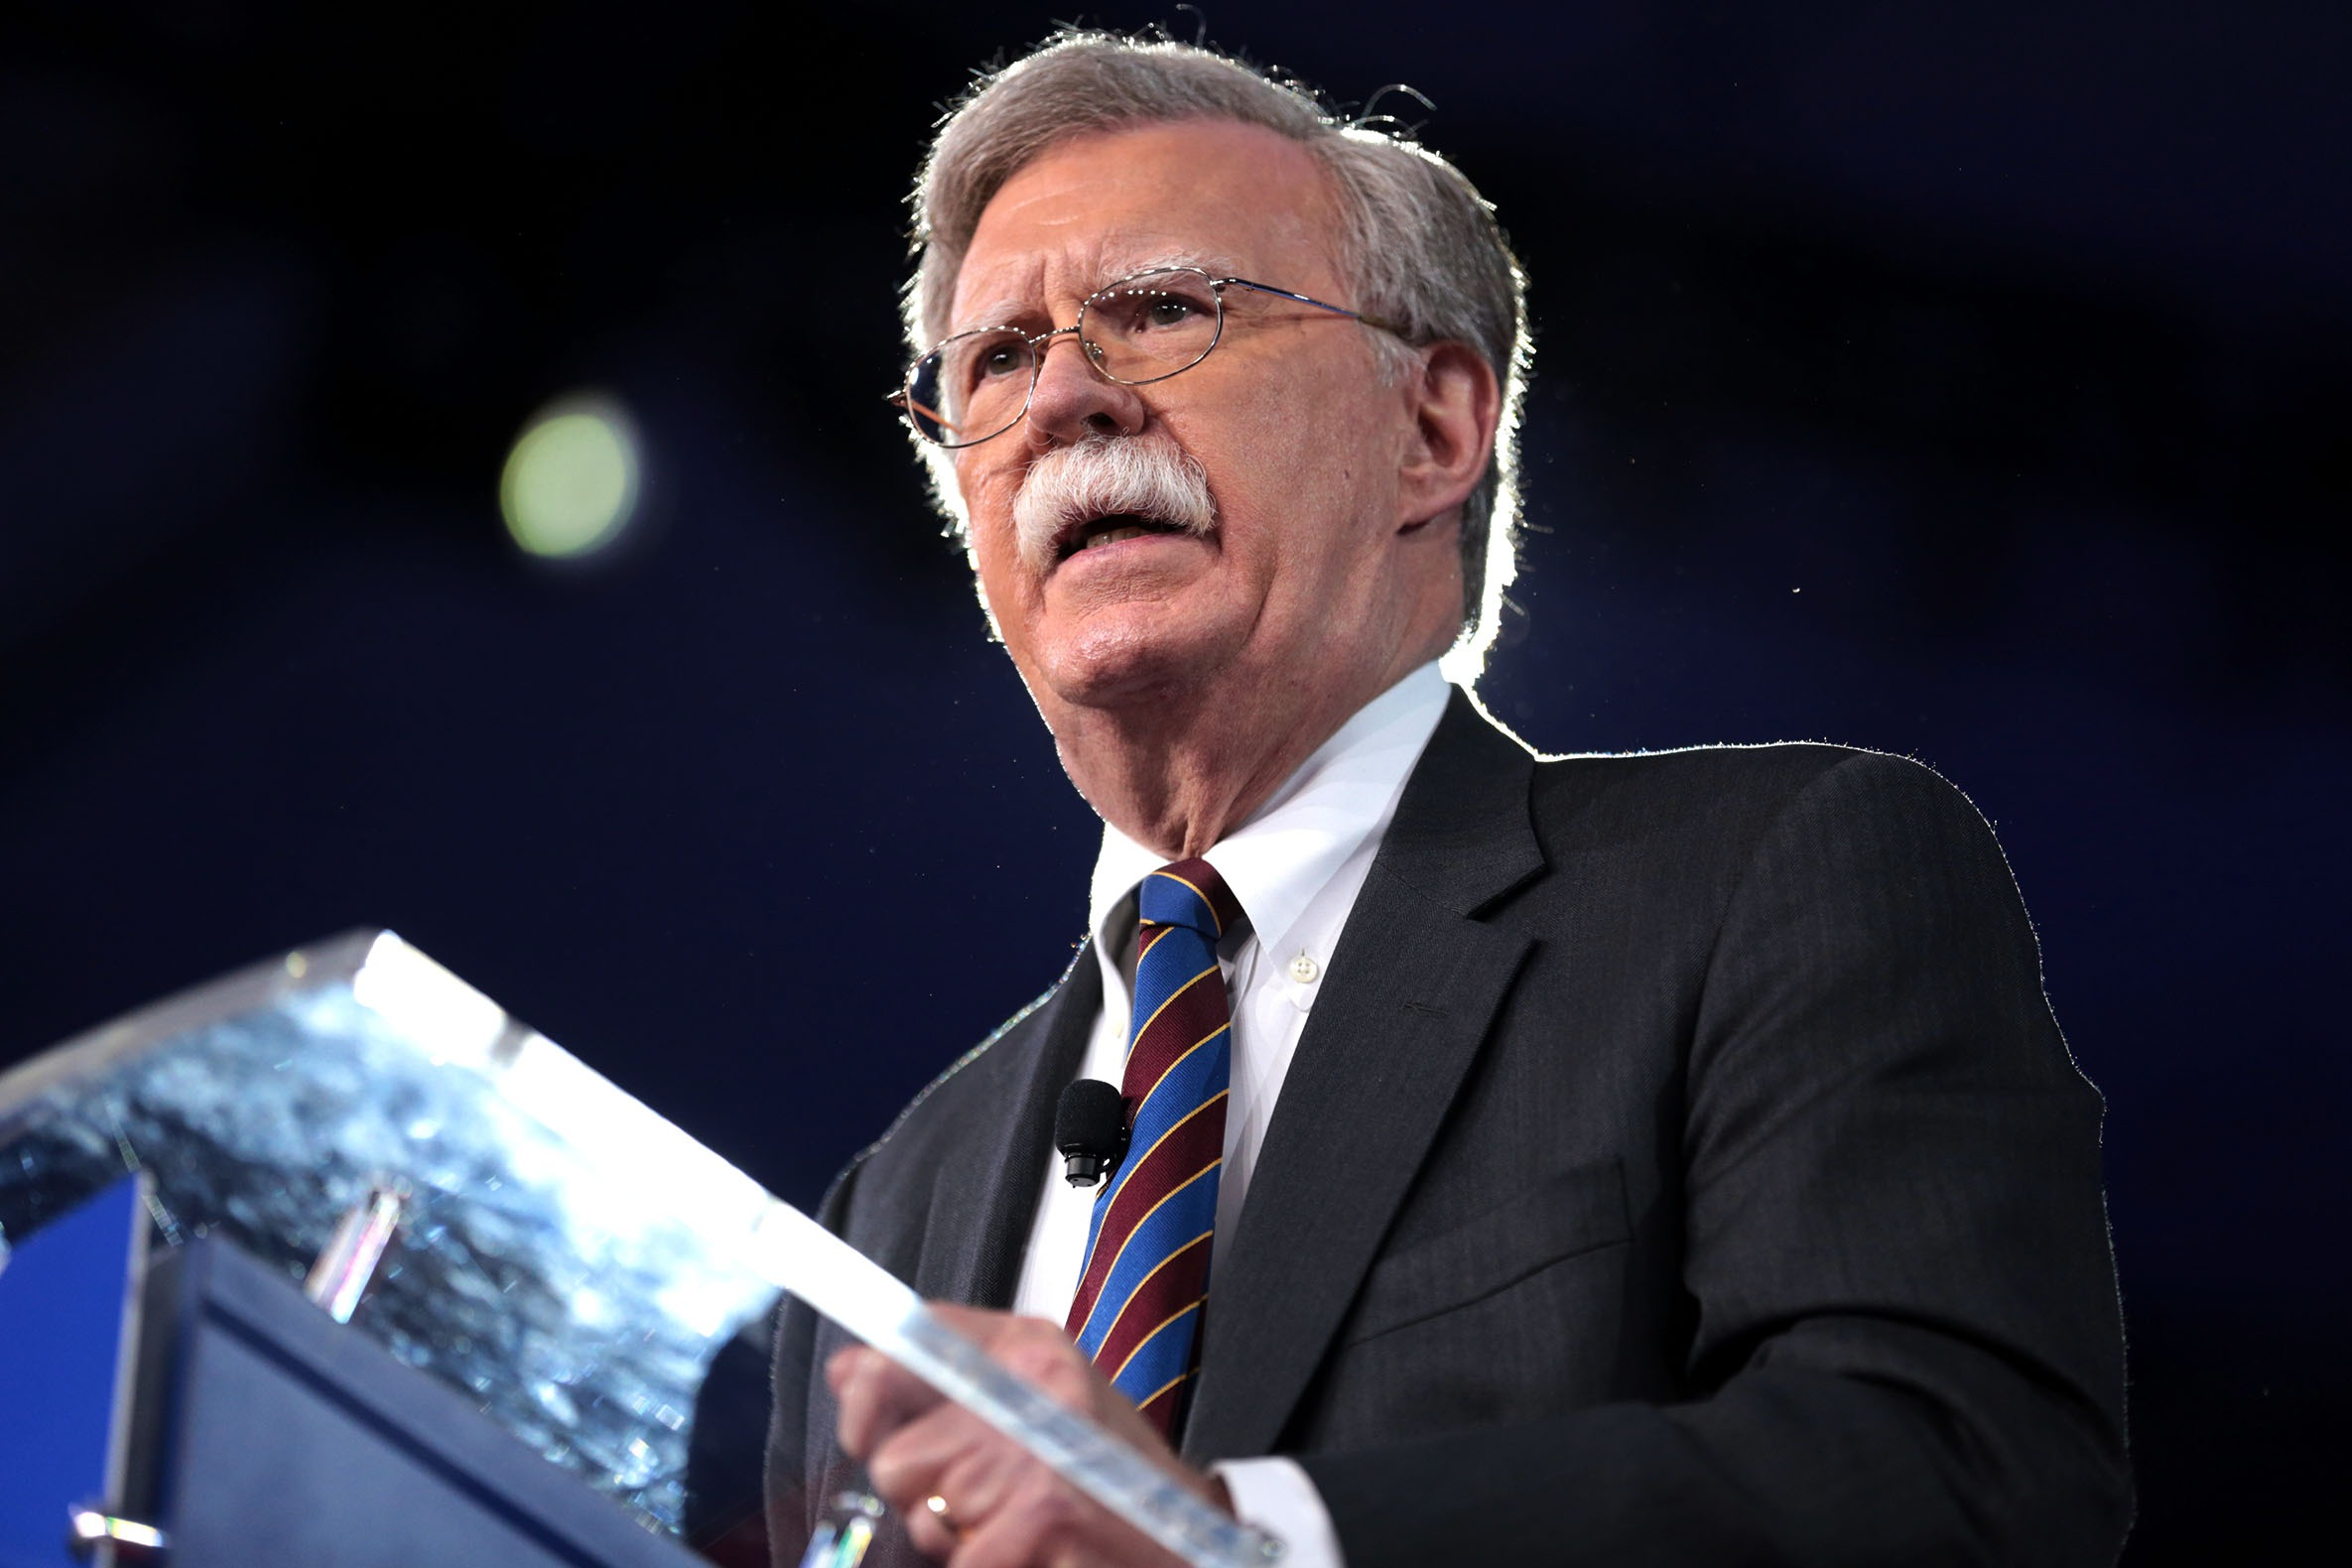 Bolton Memoir: Guide for How Not to Negotiate with North Korea